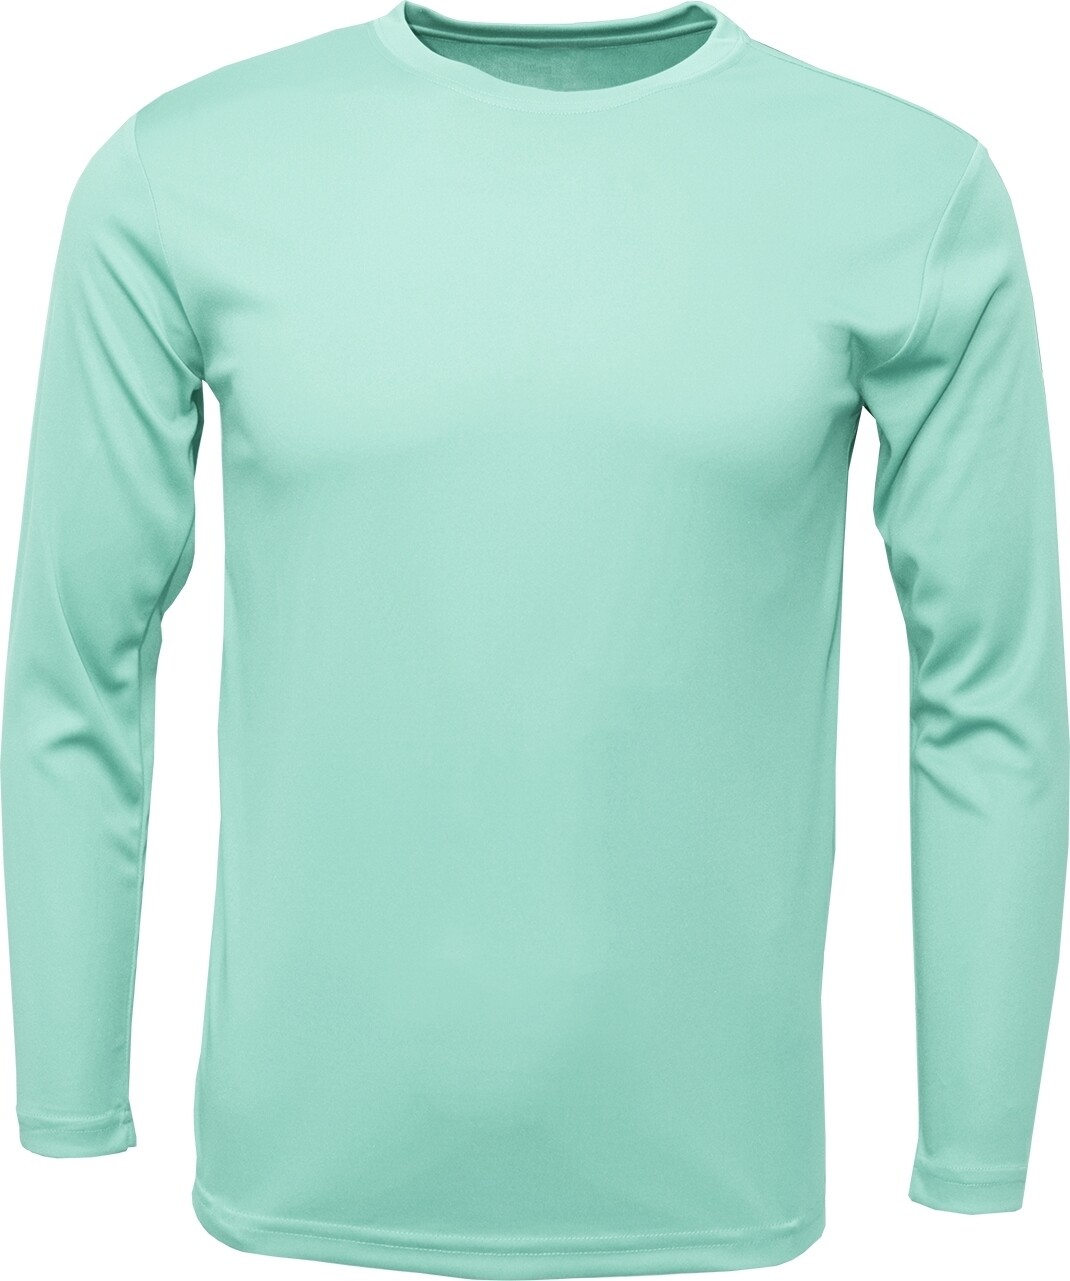 Seafoam / Front Print only